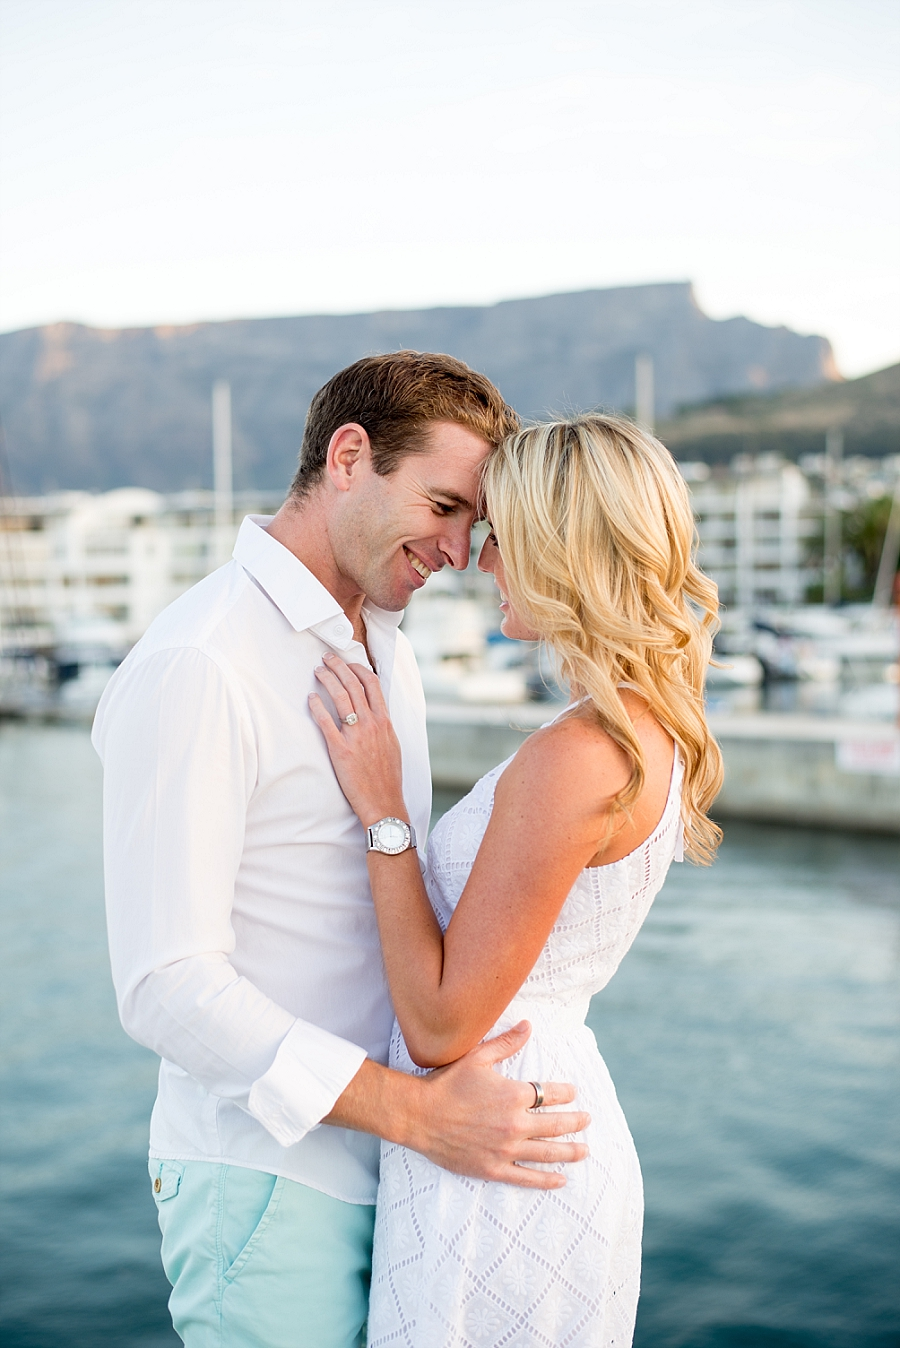 Darren Bester Photography - Engagement Shoot - David and Claire_0034.jpg